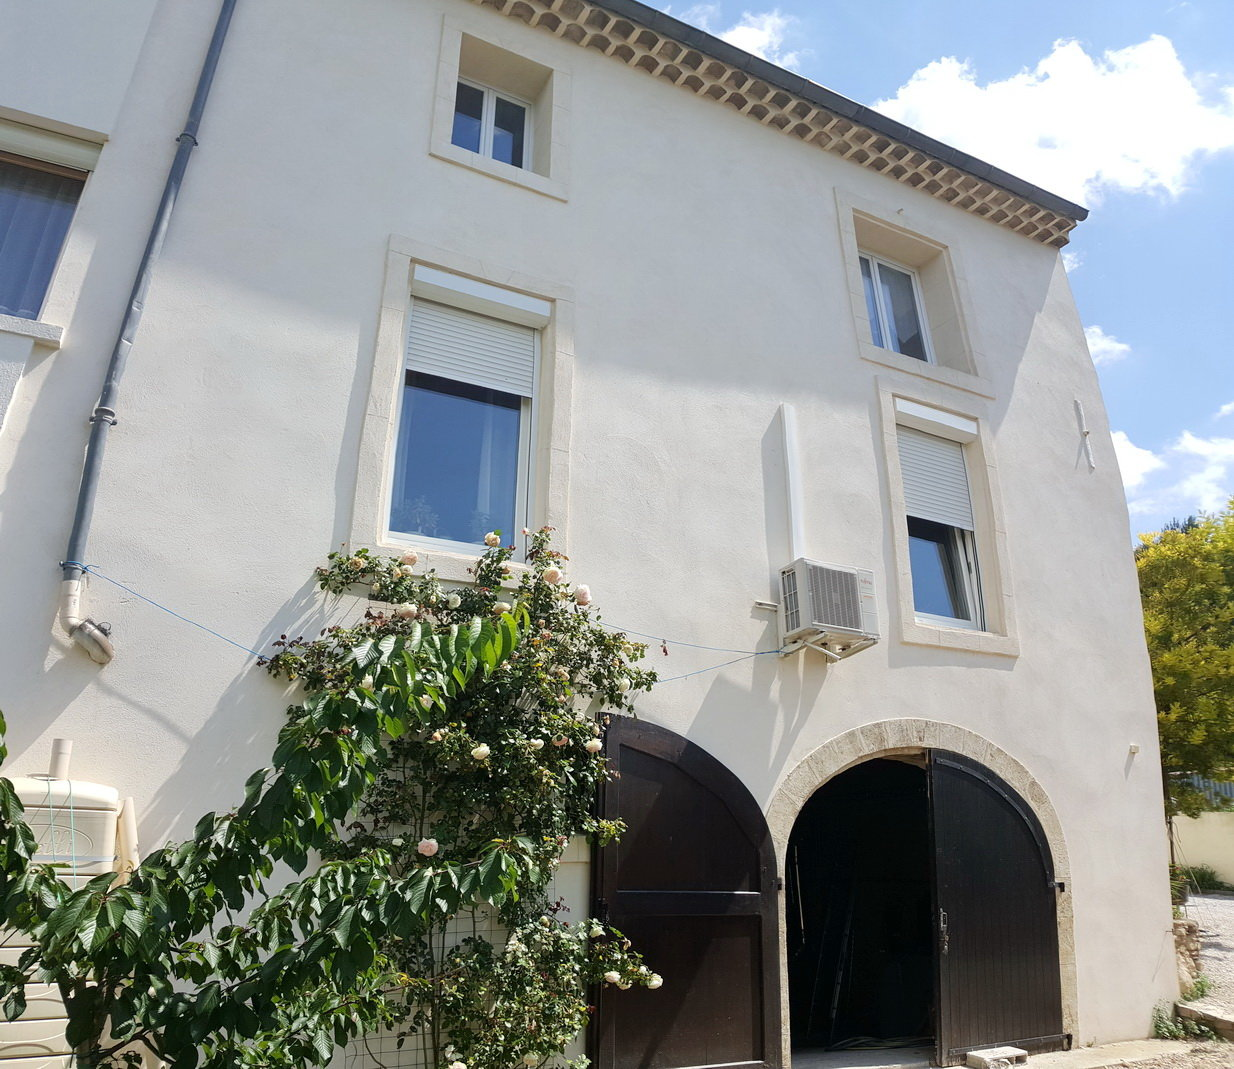 Confortable wine makers house with 3 garages, garden and terrace